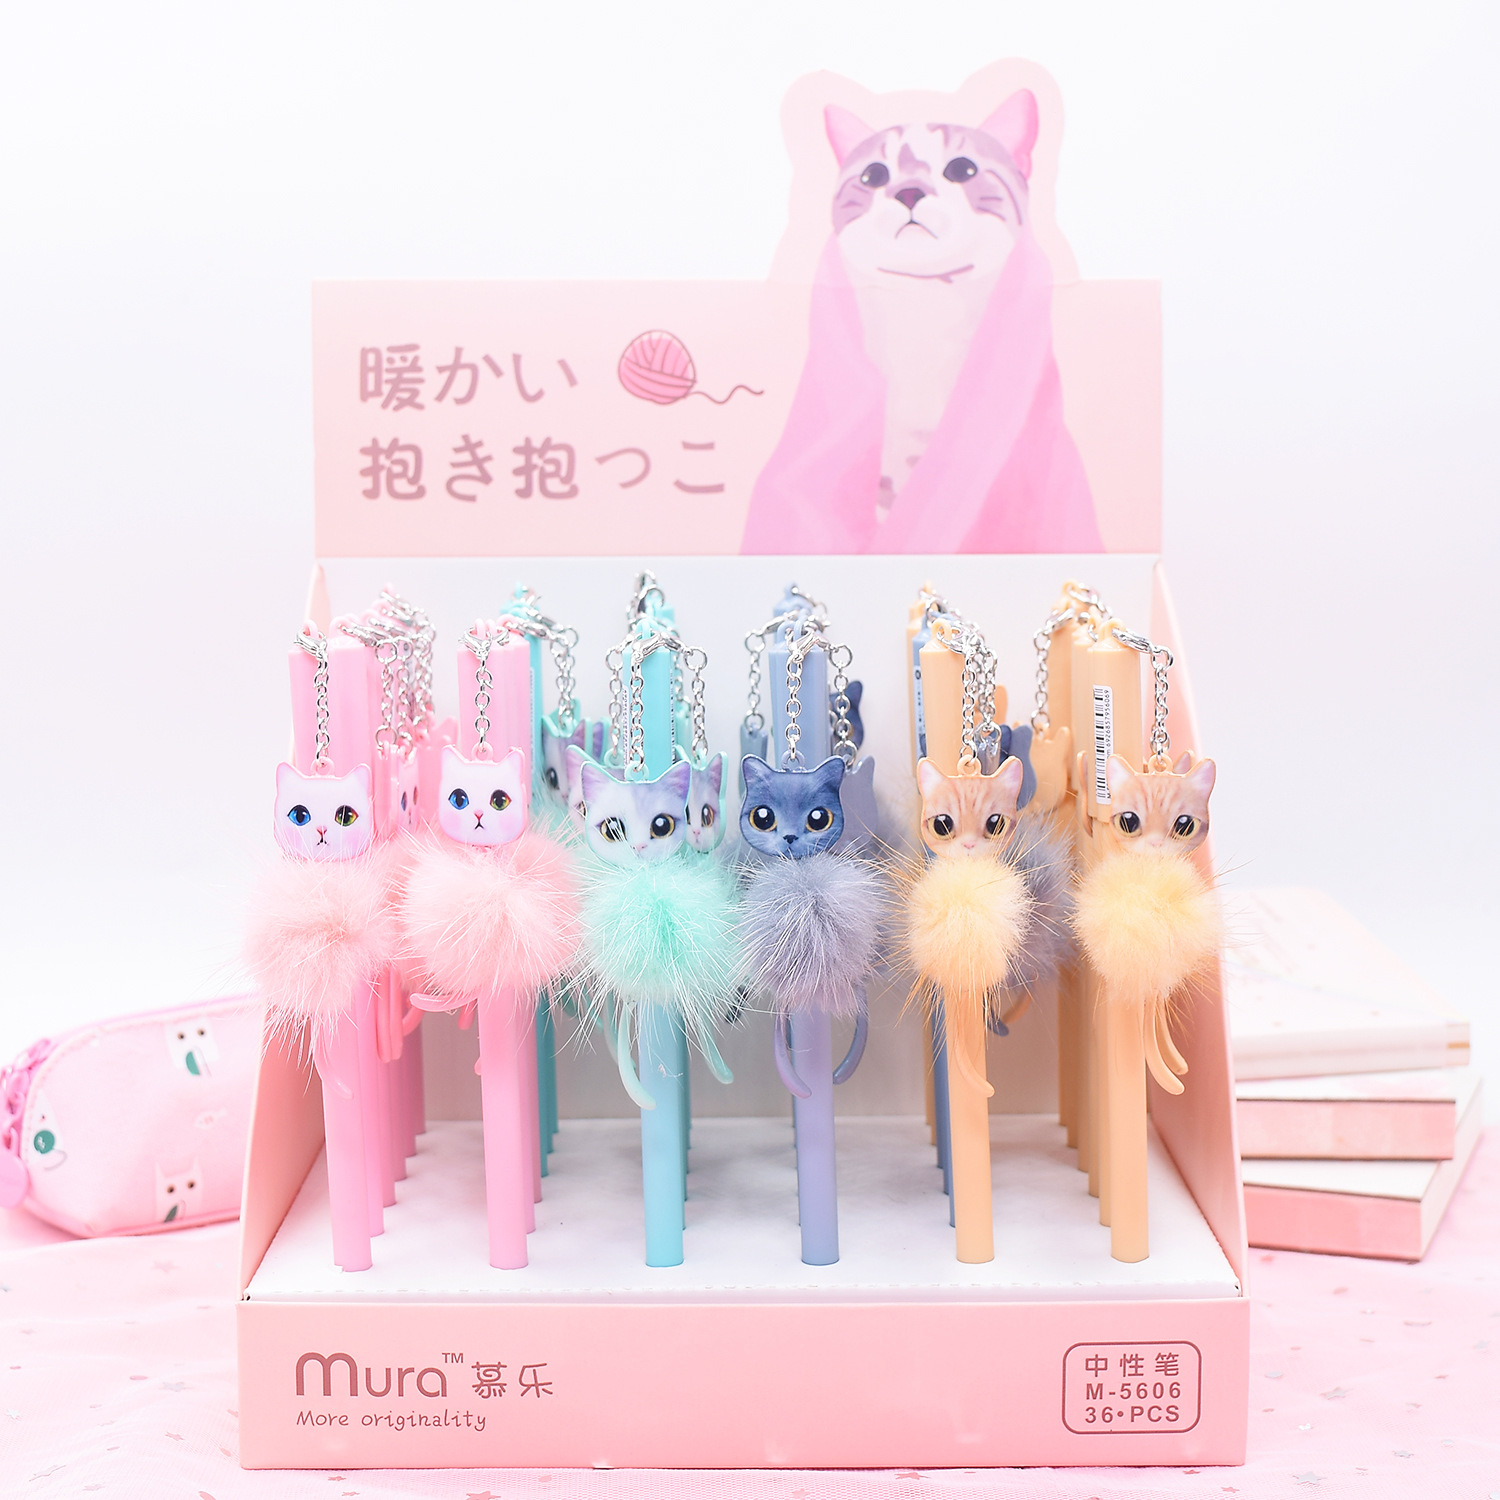 36pcs Creative Stationery Student Pen Cute Cat Plush Gel Pen 0.5mm Full Needle Black Ink Pen School Supplies Office Supplies36pcs Creative Stationery Student Pen Cute Cat Plush Gel Pen 0.5mm Full Needle Black Ink Pen School Supplies Office Supplies